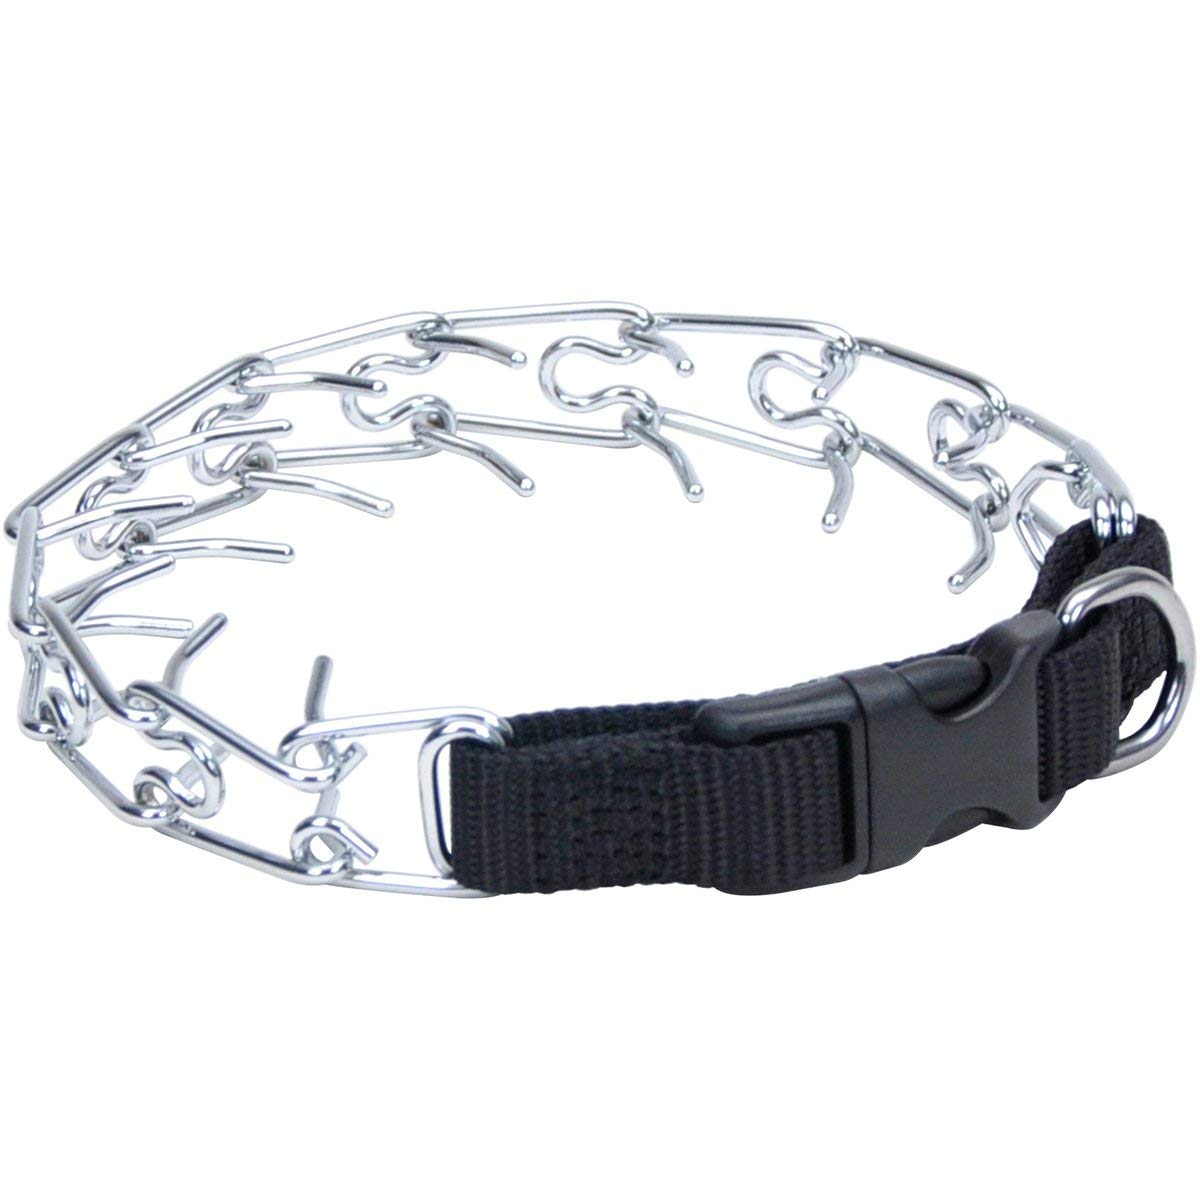 "Coastal Pet Products Titan Easy-On Dog Prong Training Collar with Buckle Small Silver 13"" x 2.50"" x 1.5"" Dog Collars and Leashes - London the Local"